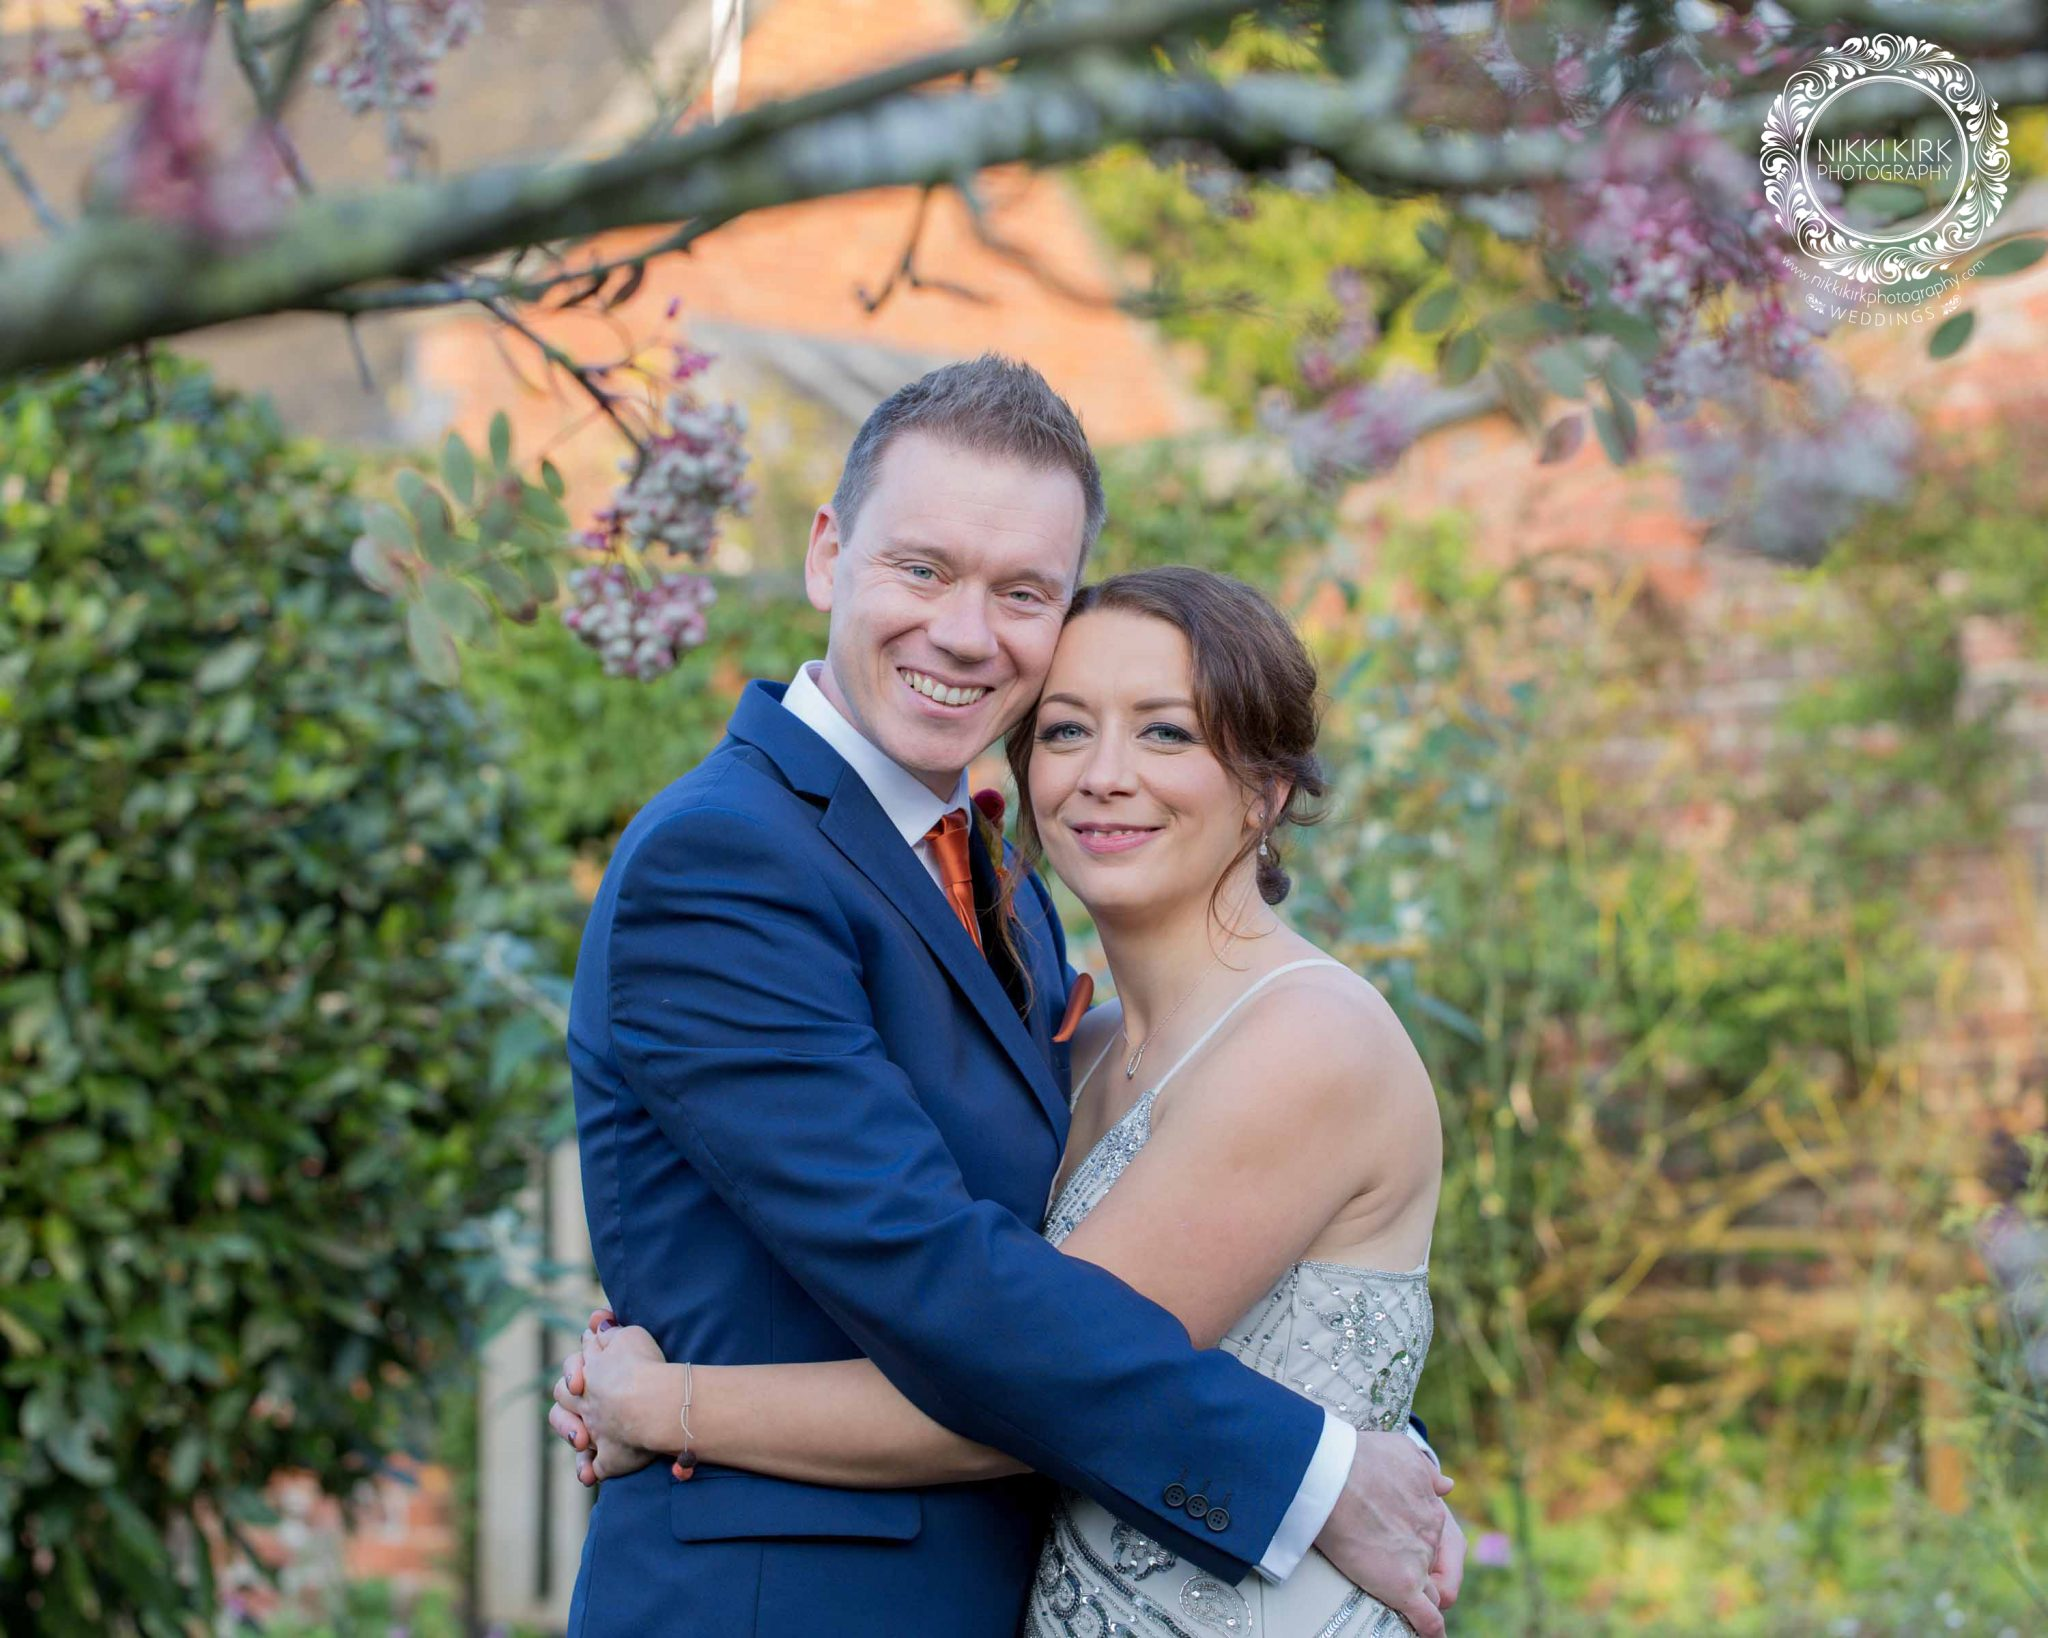 Glenfall-House-autumn-wedding-photographer-Nikki-Kirk-Photography